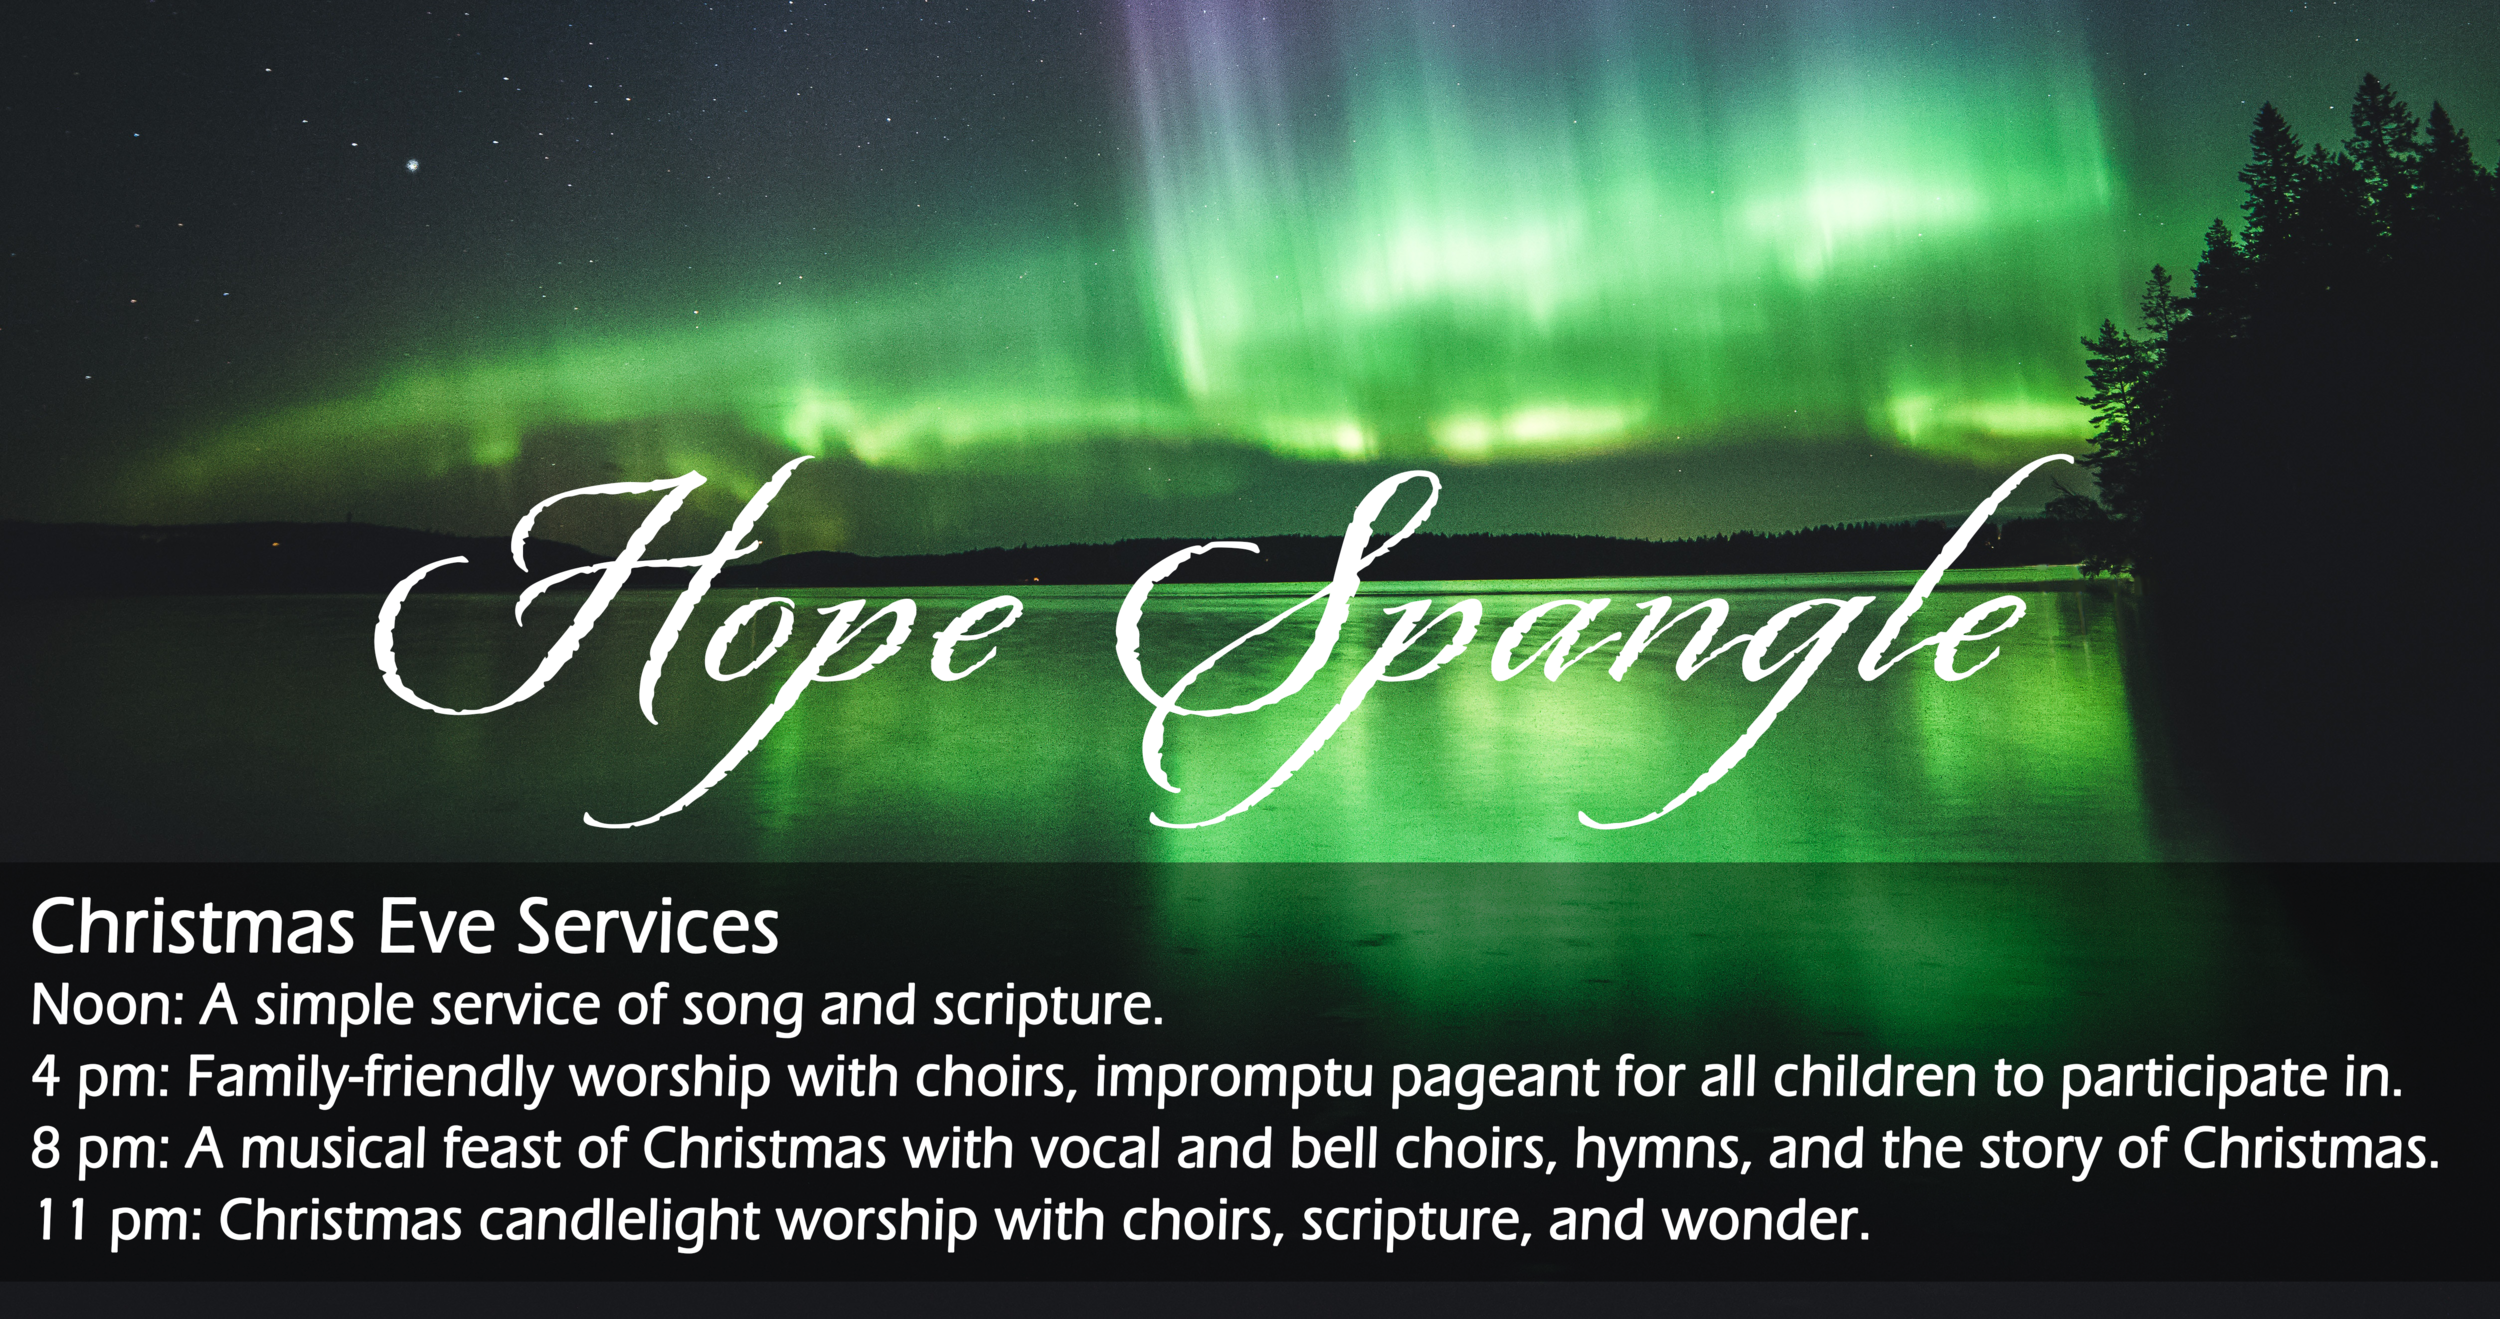 Come for the music, and be immersed in the joyful sounds of bells, choirs, organs and hymns tied together by the wondrous story of Christmas